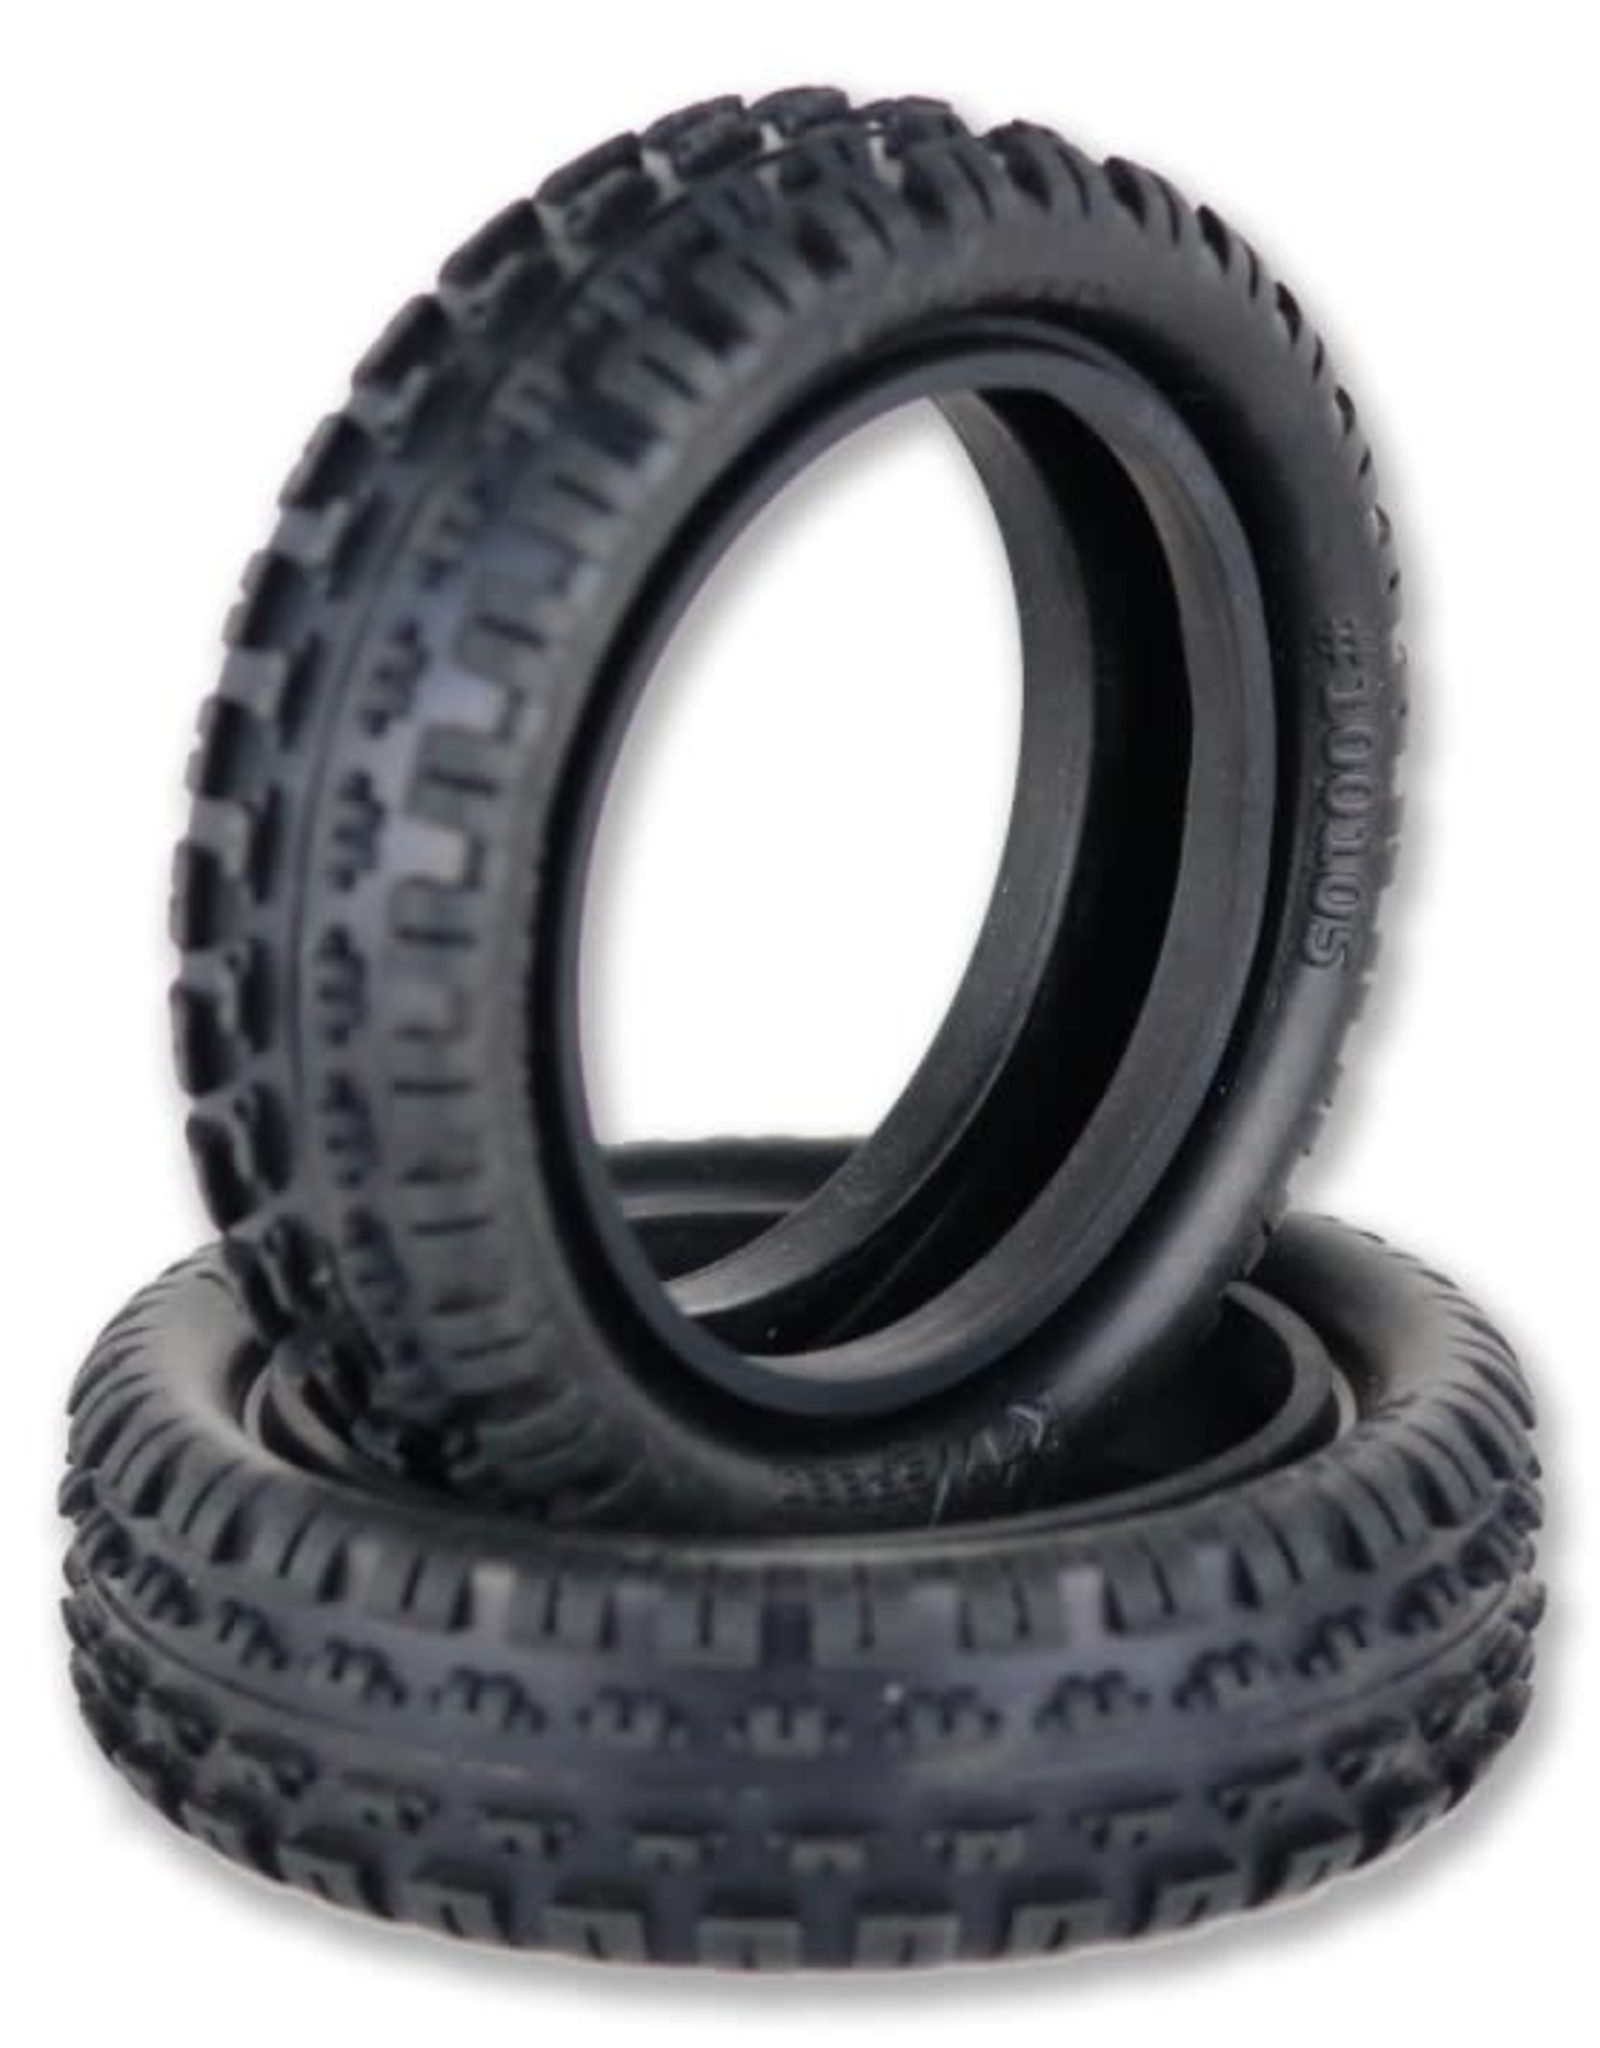 Raw Speed Incisor 2W Buggy Front Tire - Soft Compound (Carpet) - no insert  100105S